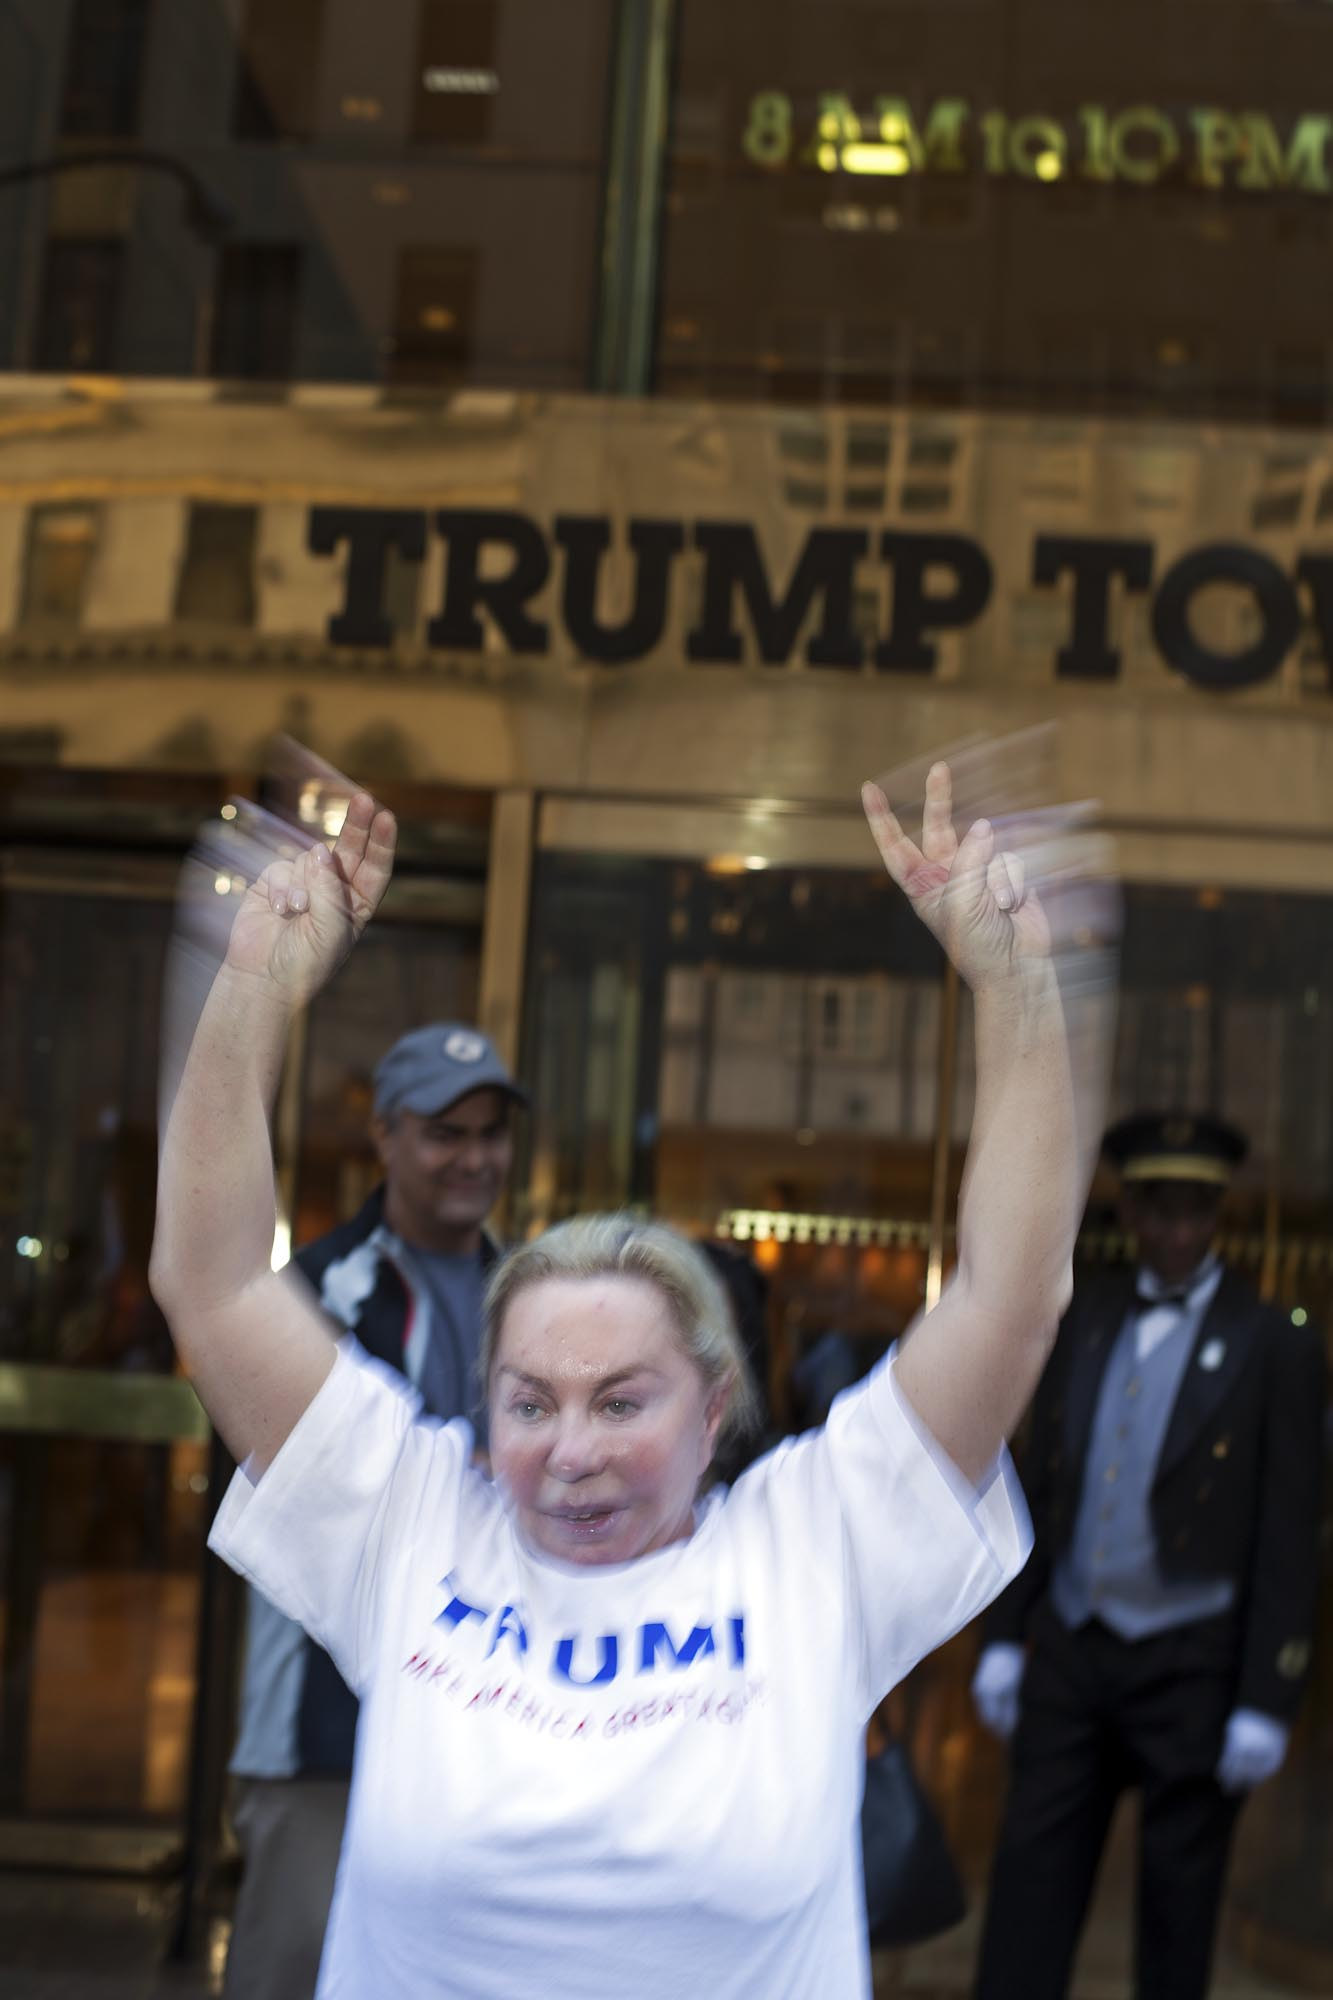 15.09.15: Trump Supporter in front of The Trump Tower, 5th Ave